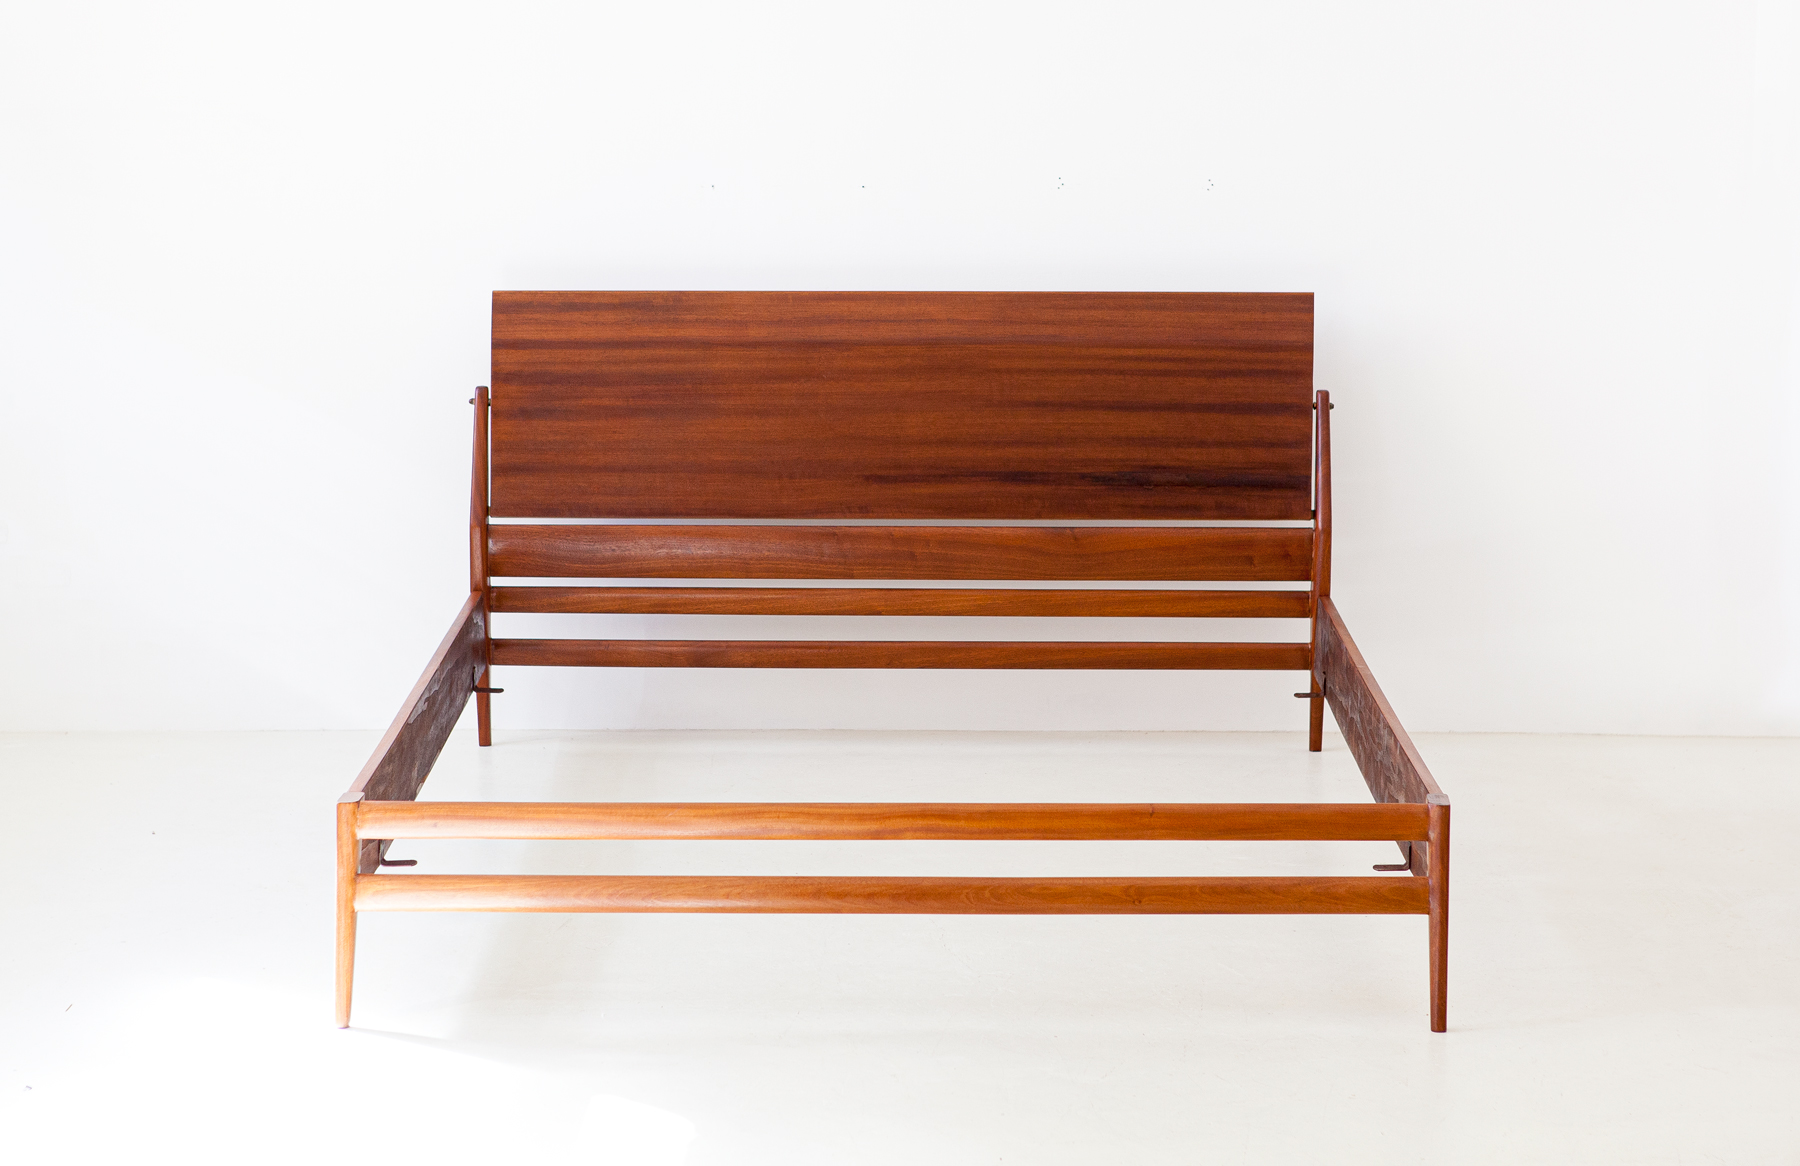 1950s-mahogany-double-bed-by-ssilvio-cavatorta-2-of101